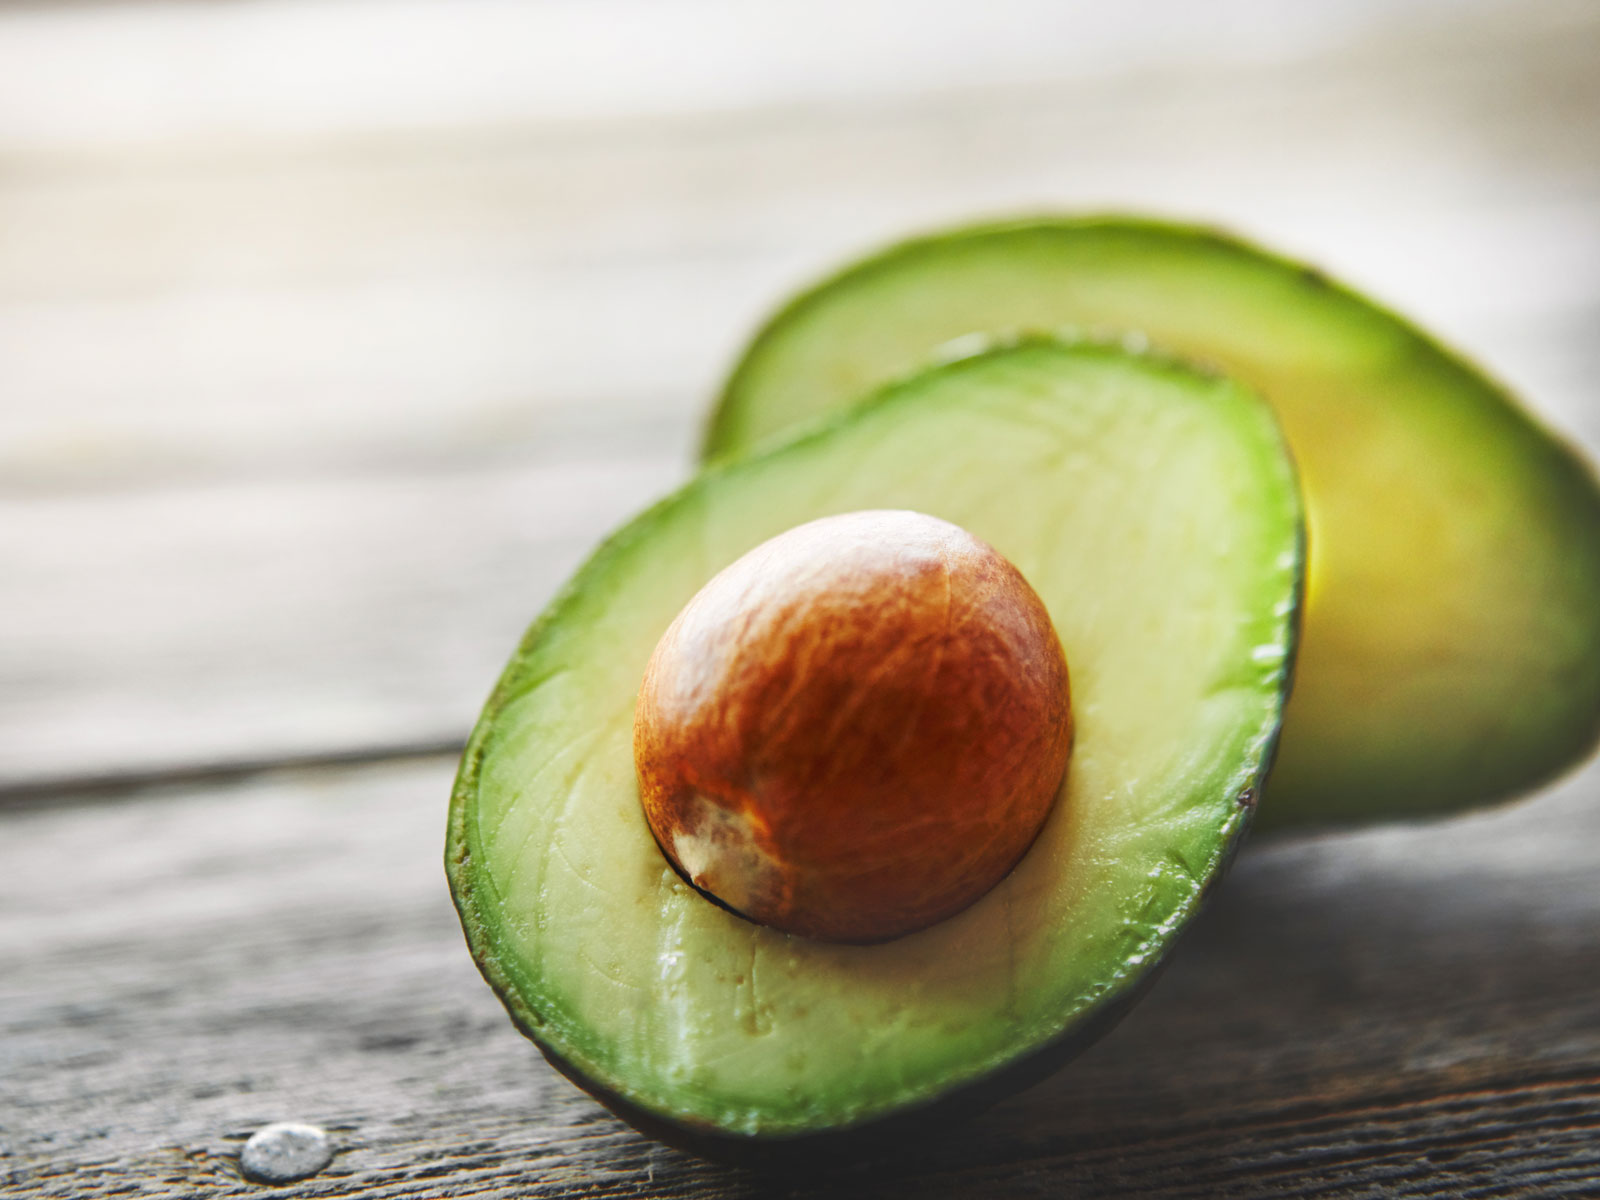 The Easiest—and Safest—Way to Slice and Peel an Avocado